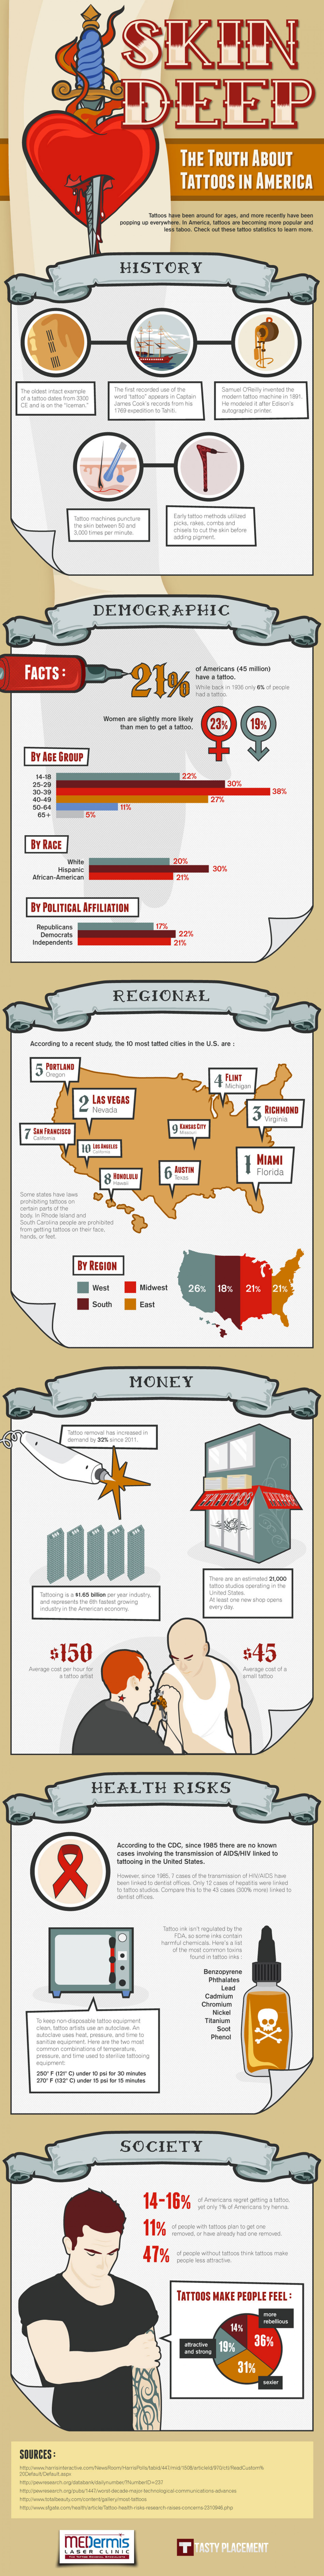 Skin Deep: The Truth About Tattoos in America Infographic